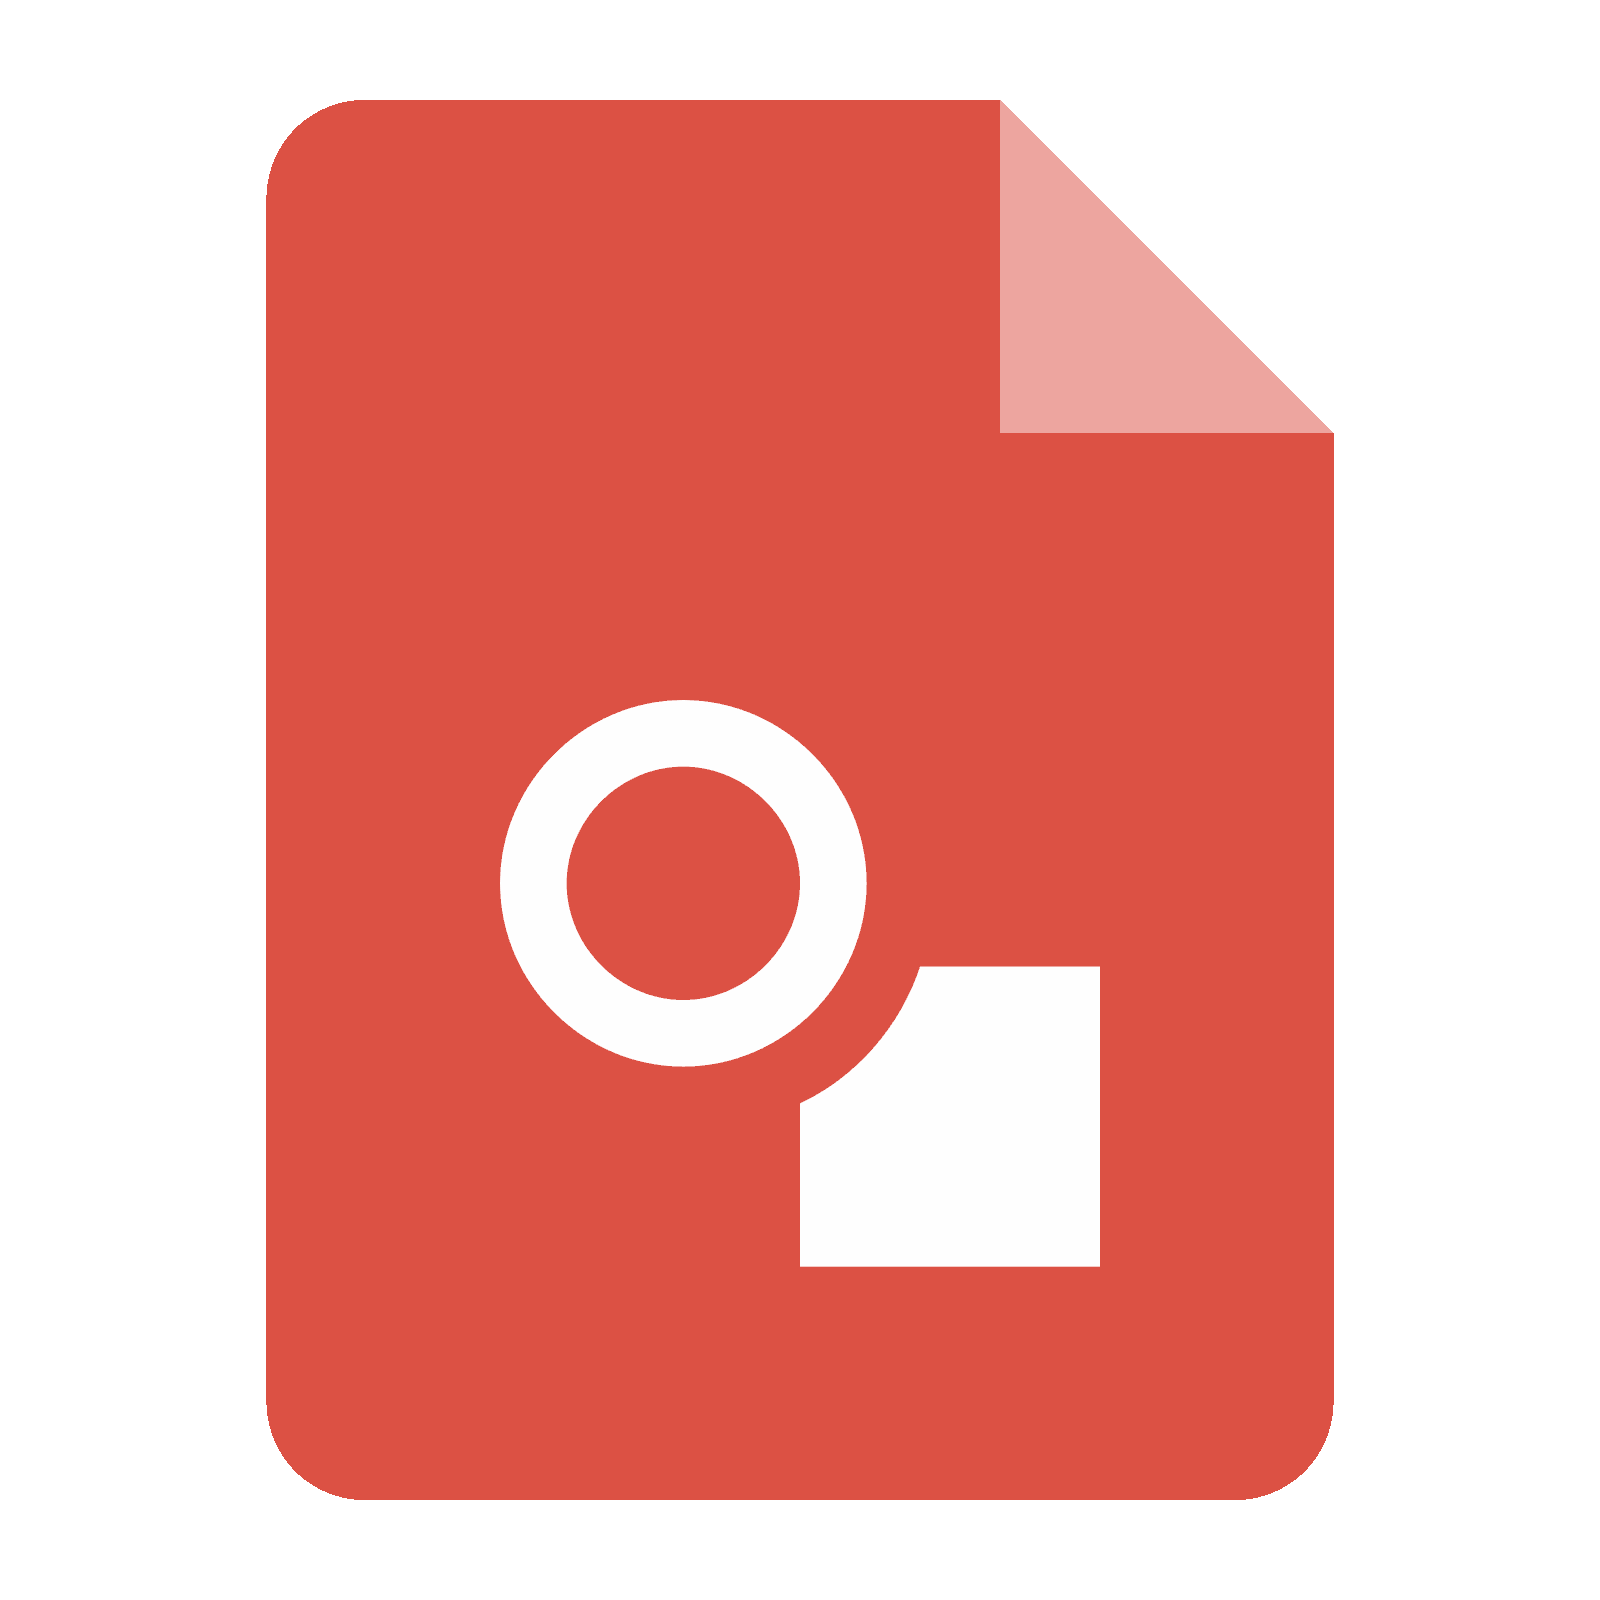 jpg royalty free library Google Drawing Icon